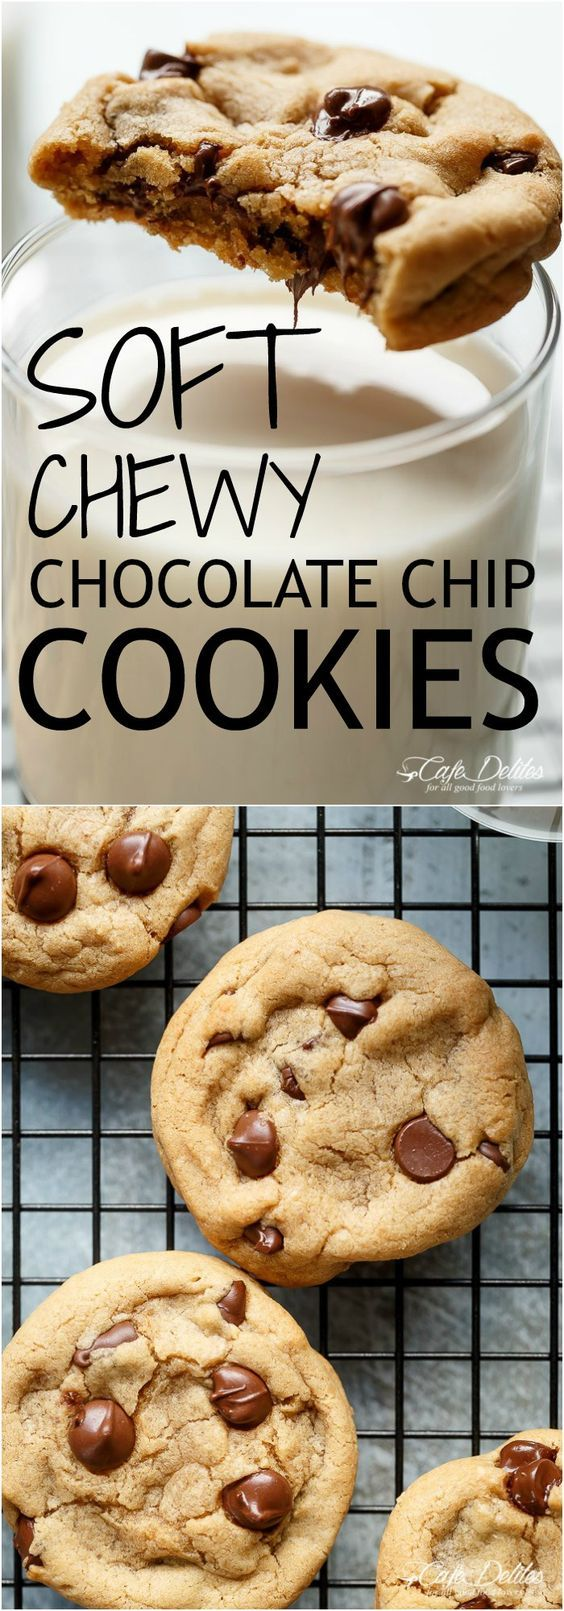 The best, Easy Soft Chewy Chocolate Chip Cookies with simple steps and ONE added ingredient for a soft and chewy experience in LESS THAN 15 minutes!